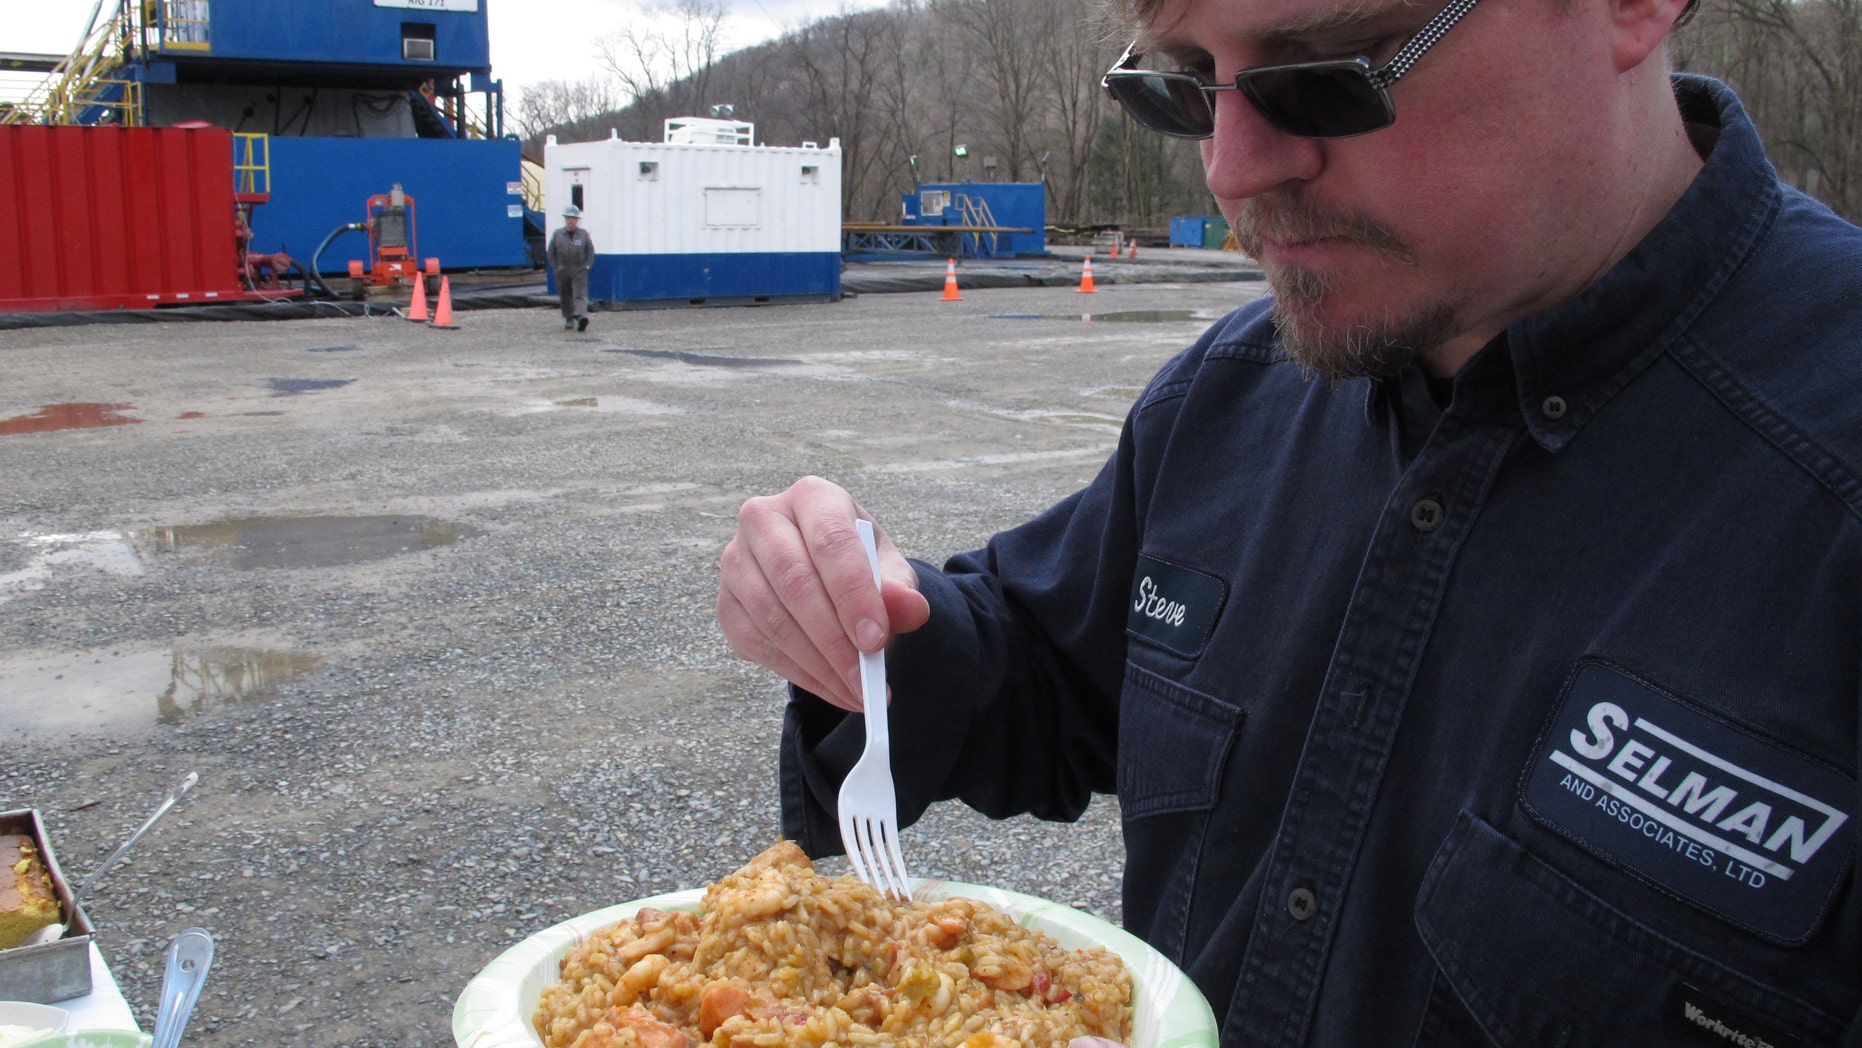 Geologist Steve Clark prepares to take a bite of jambalaya prepared for workers on a natural gas drilling site near Montoursville, Pa.